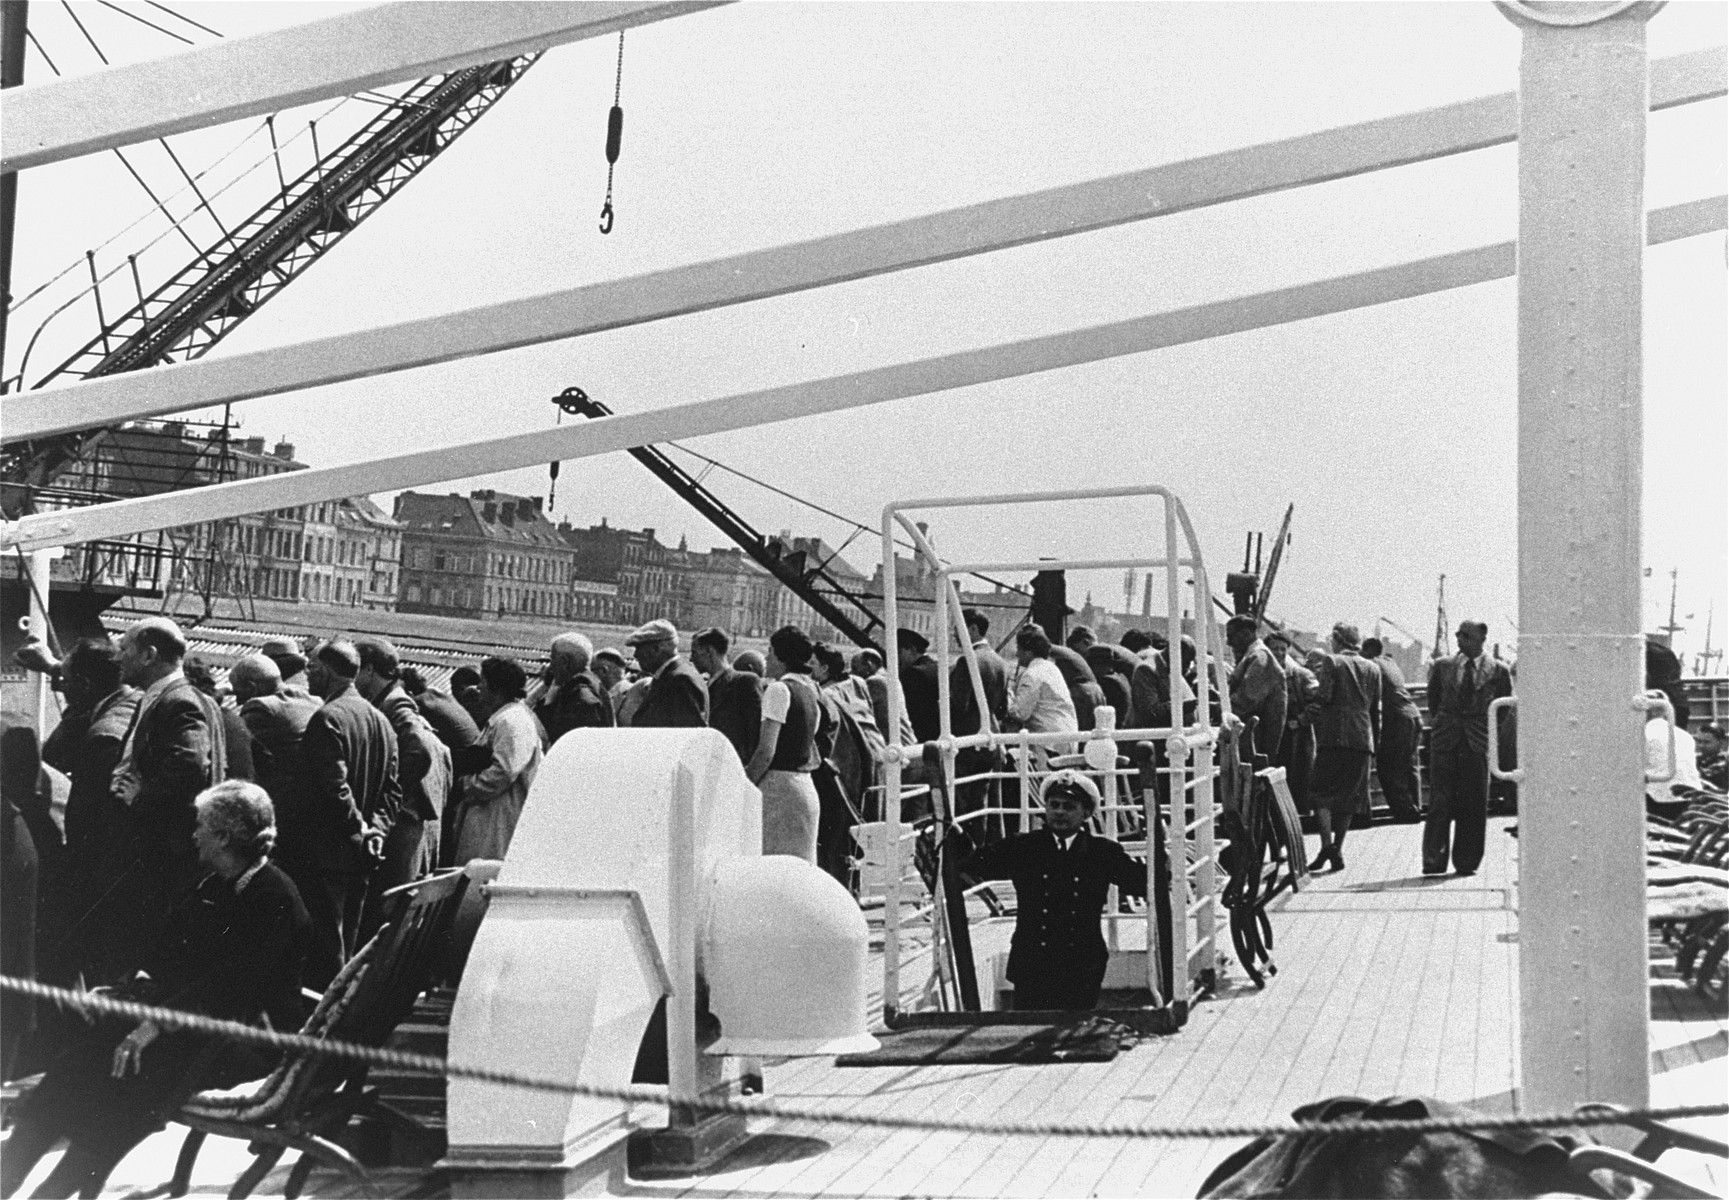 Passengers stand on the deck as the refugee ship the MS St. Louis arrives in the port of Antwerp.